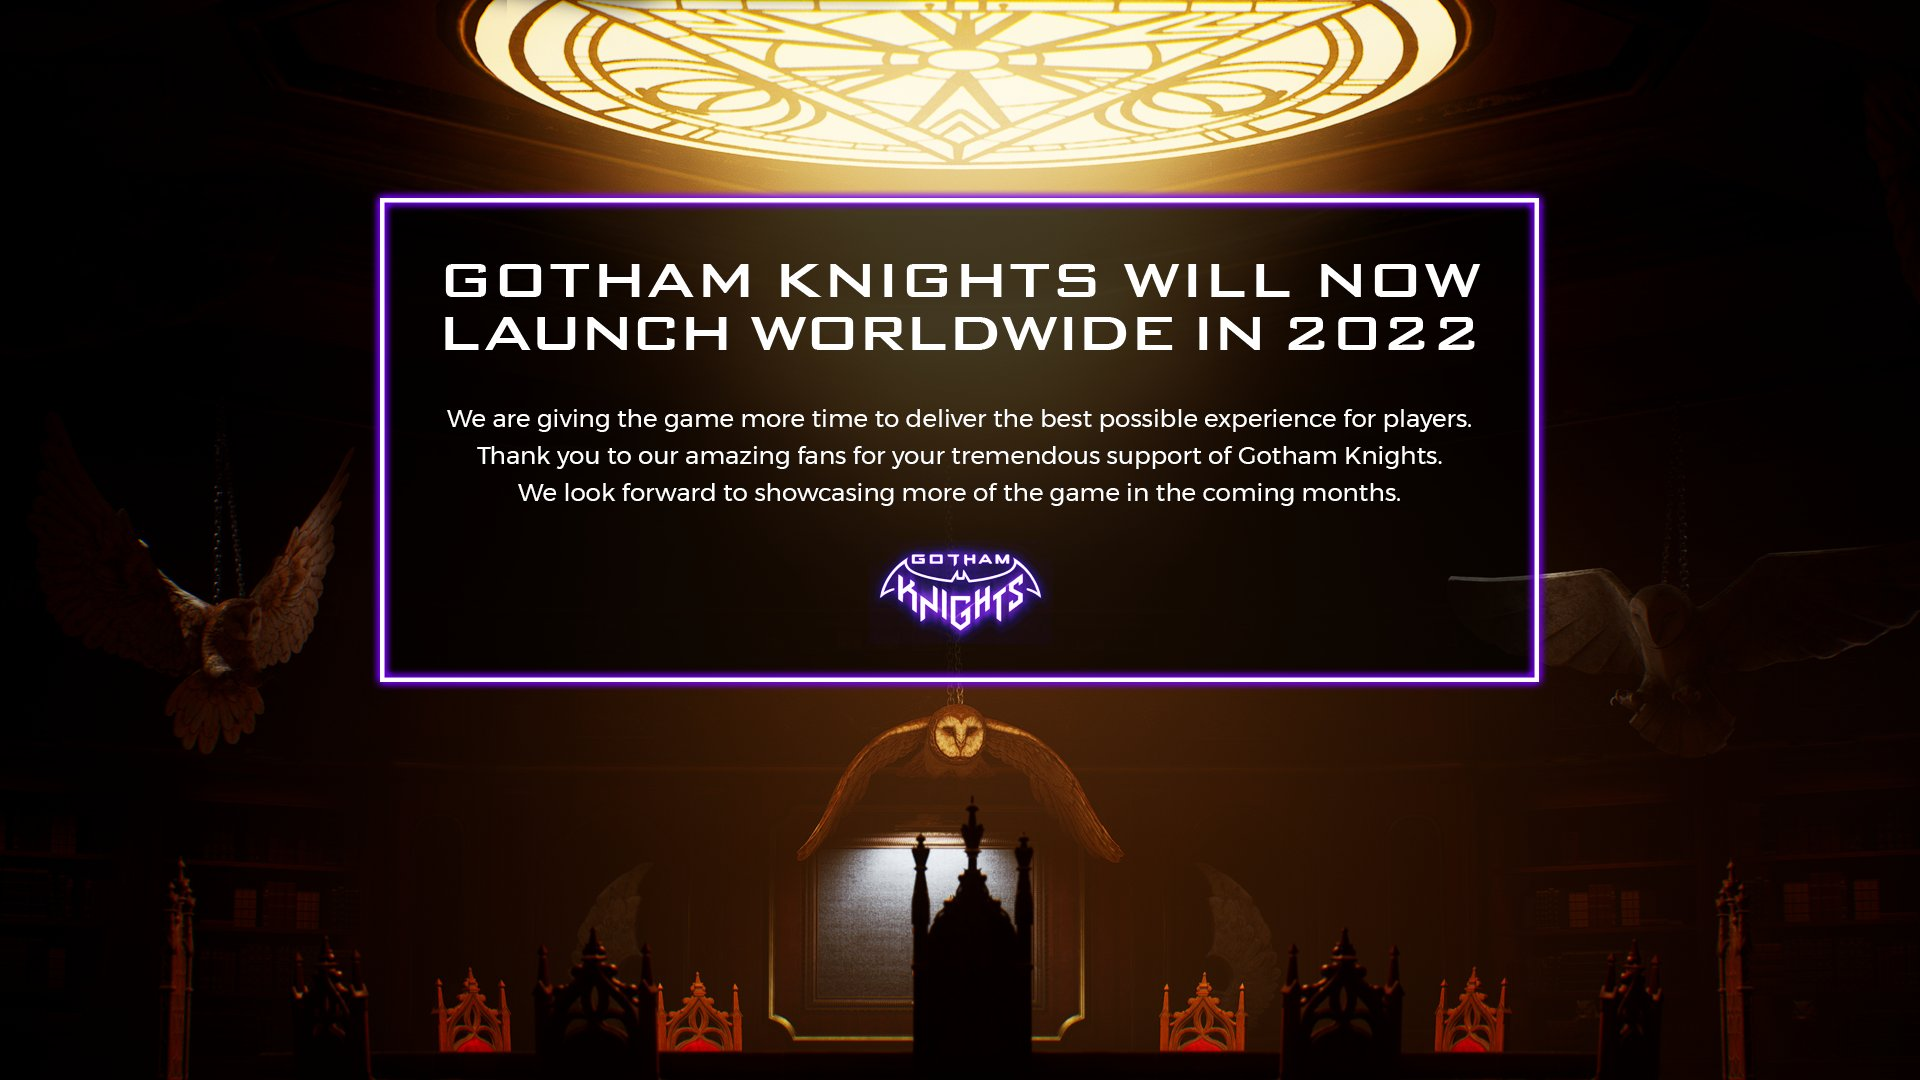 Gotham Knights delay twitter post